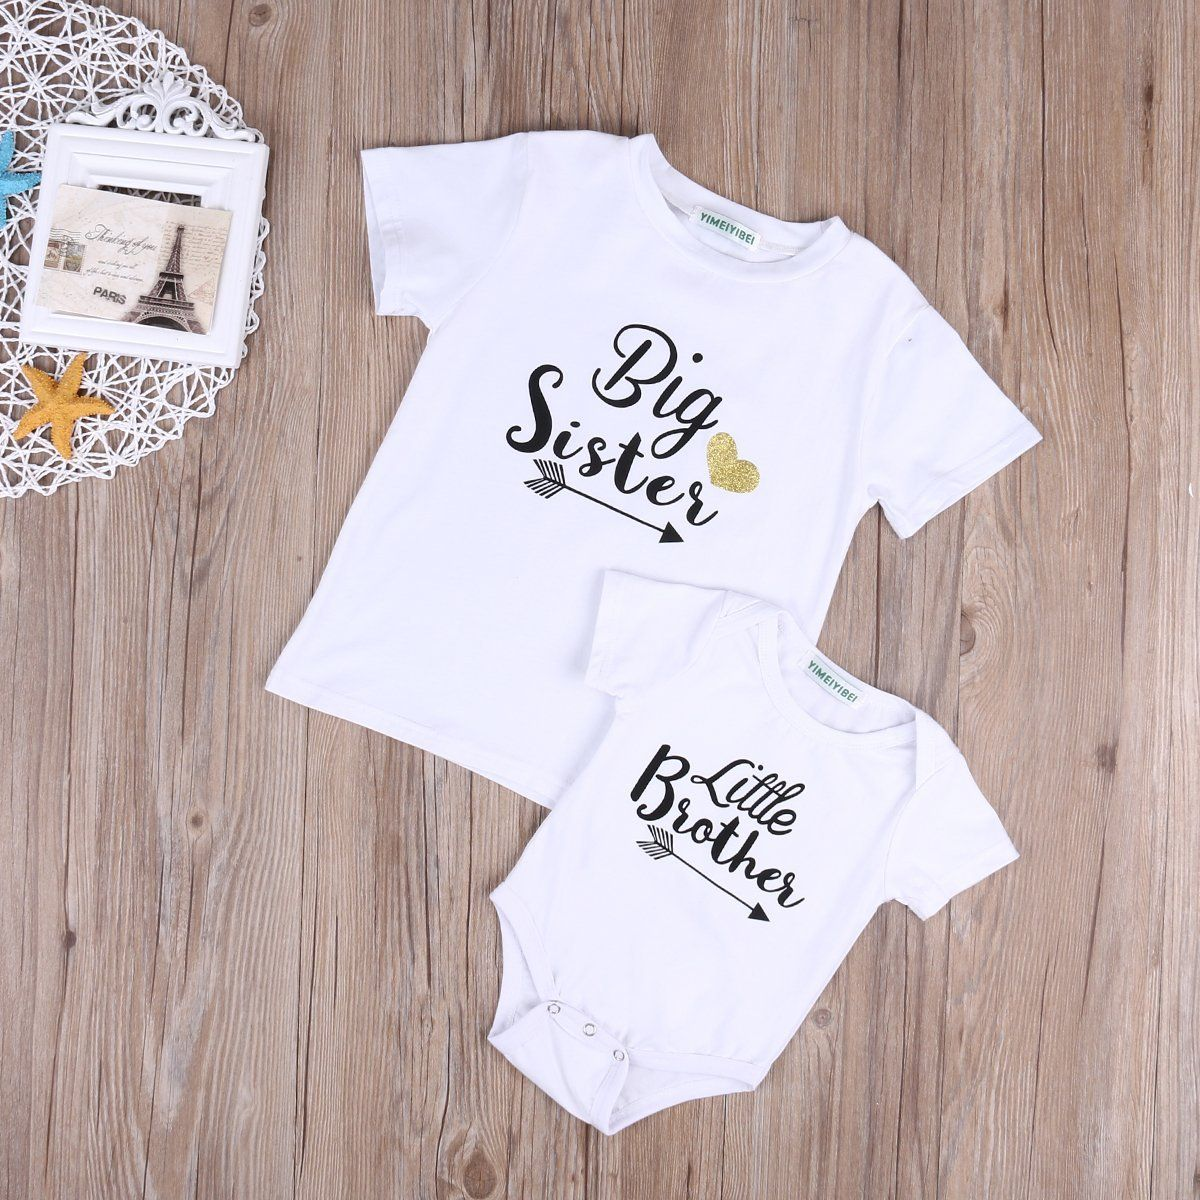 Toddler Baby Big Sister Little Brother Tops T-shirt Summer Matching Clothes